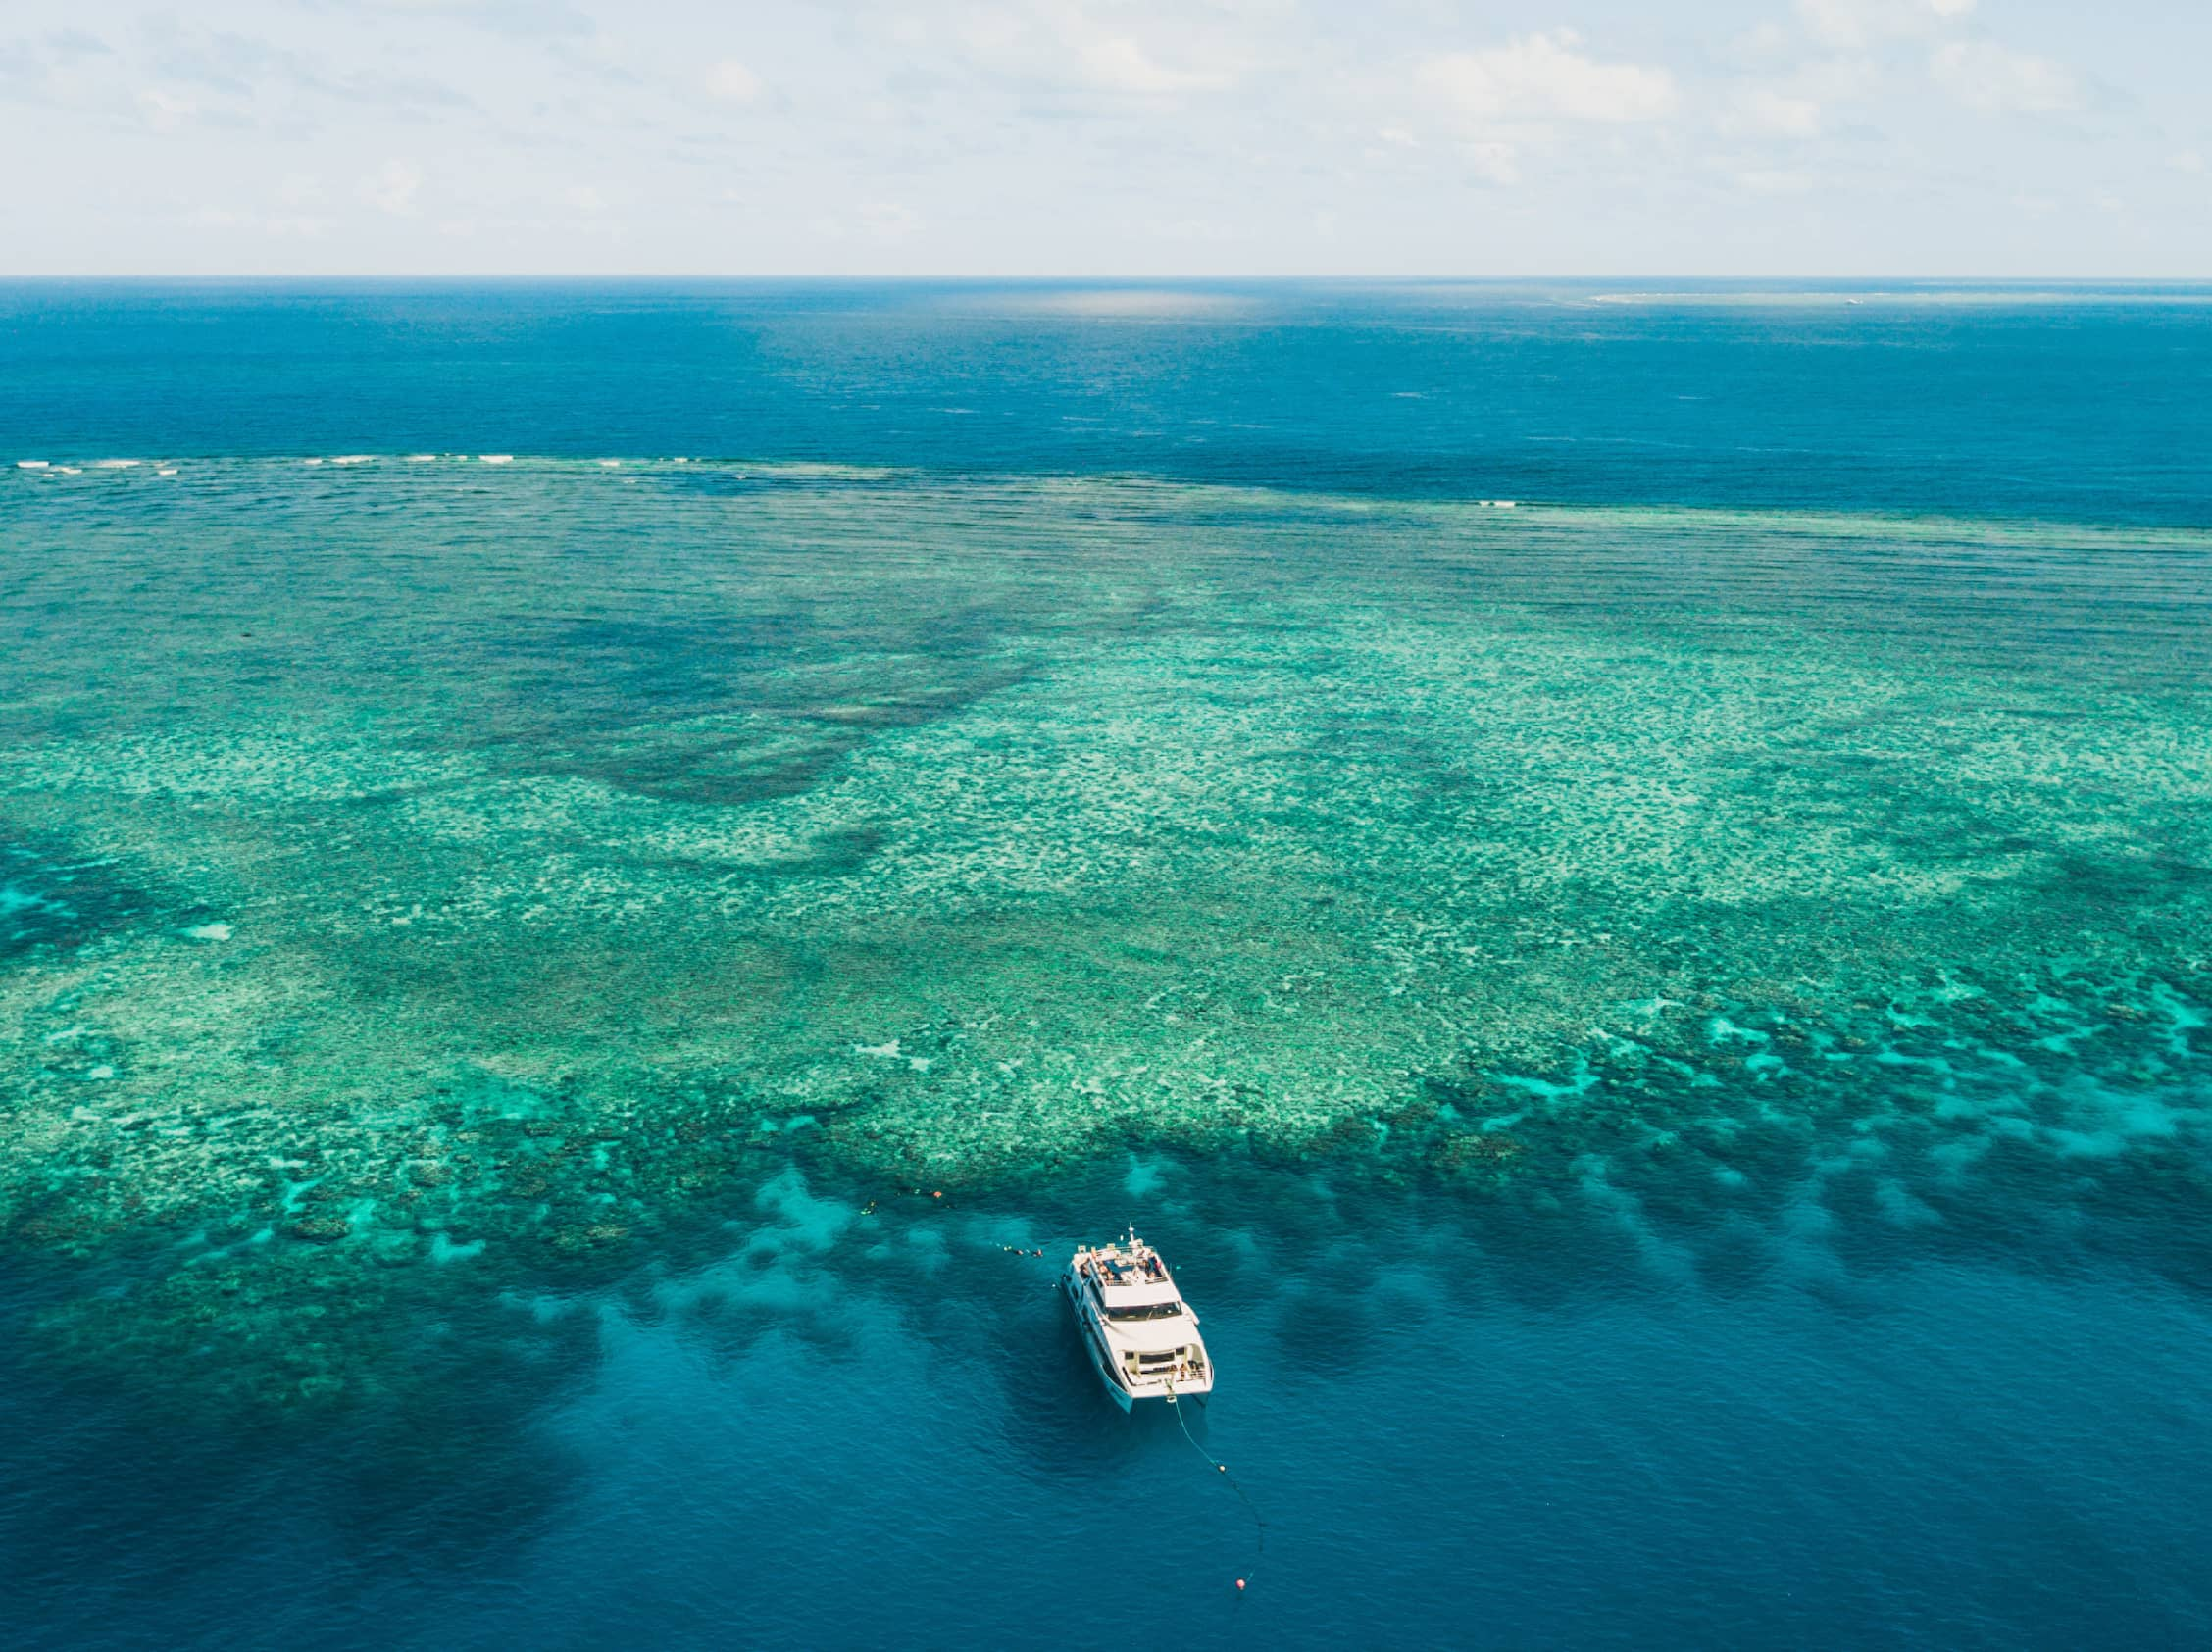 Explore the world's largest reef on a private cruise.